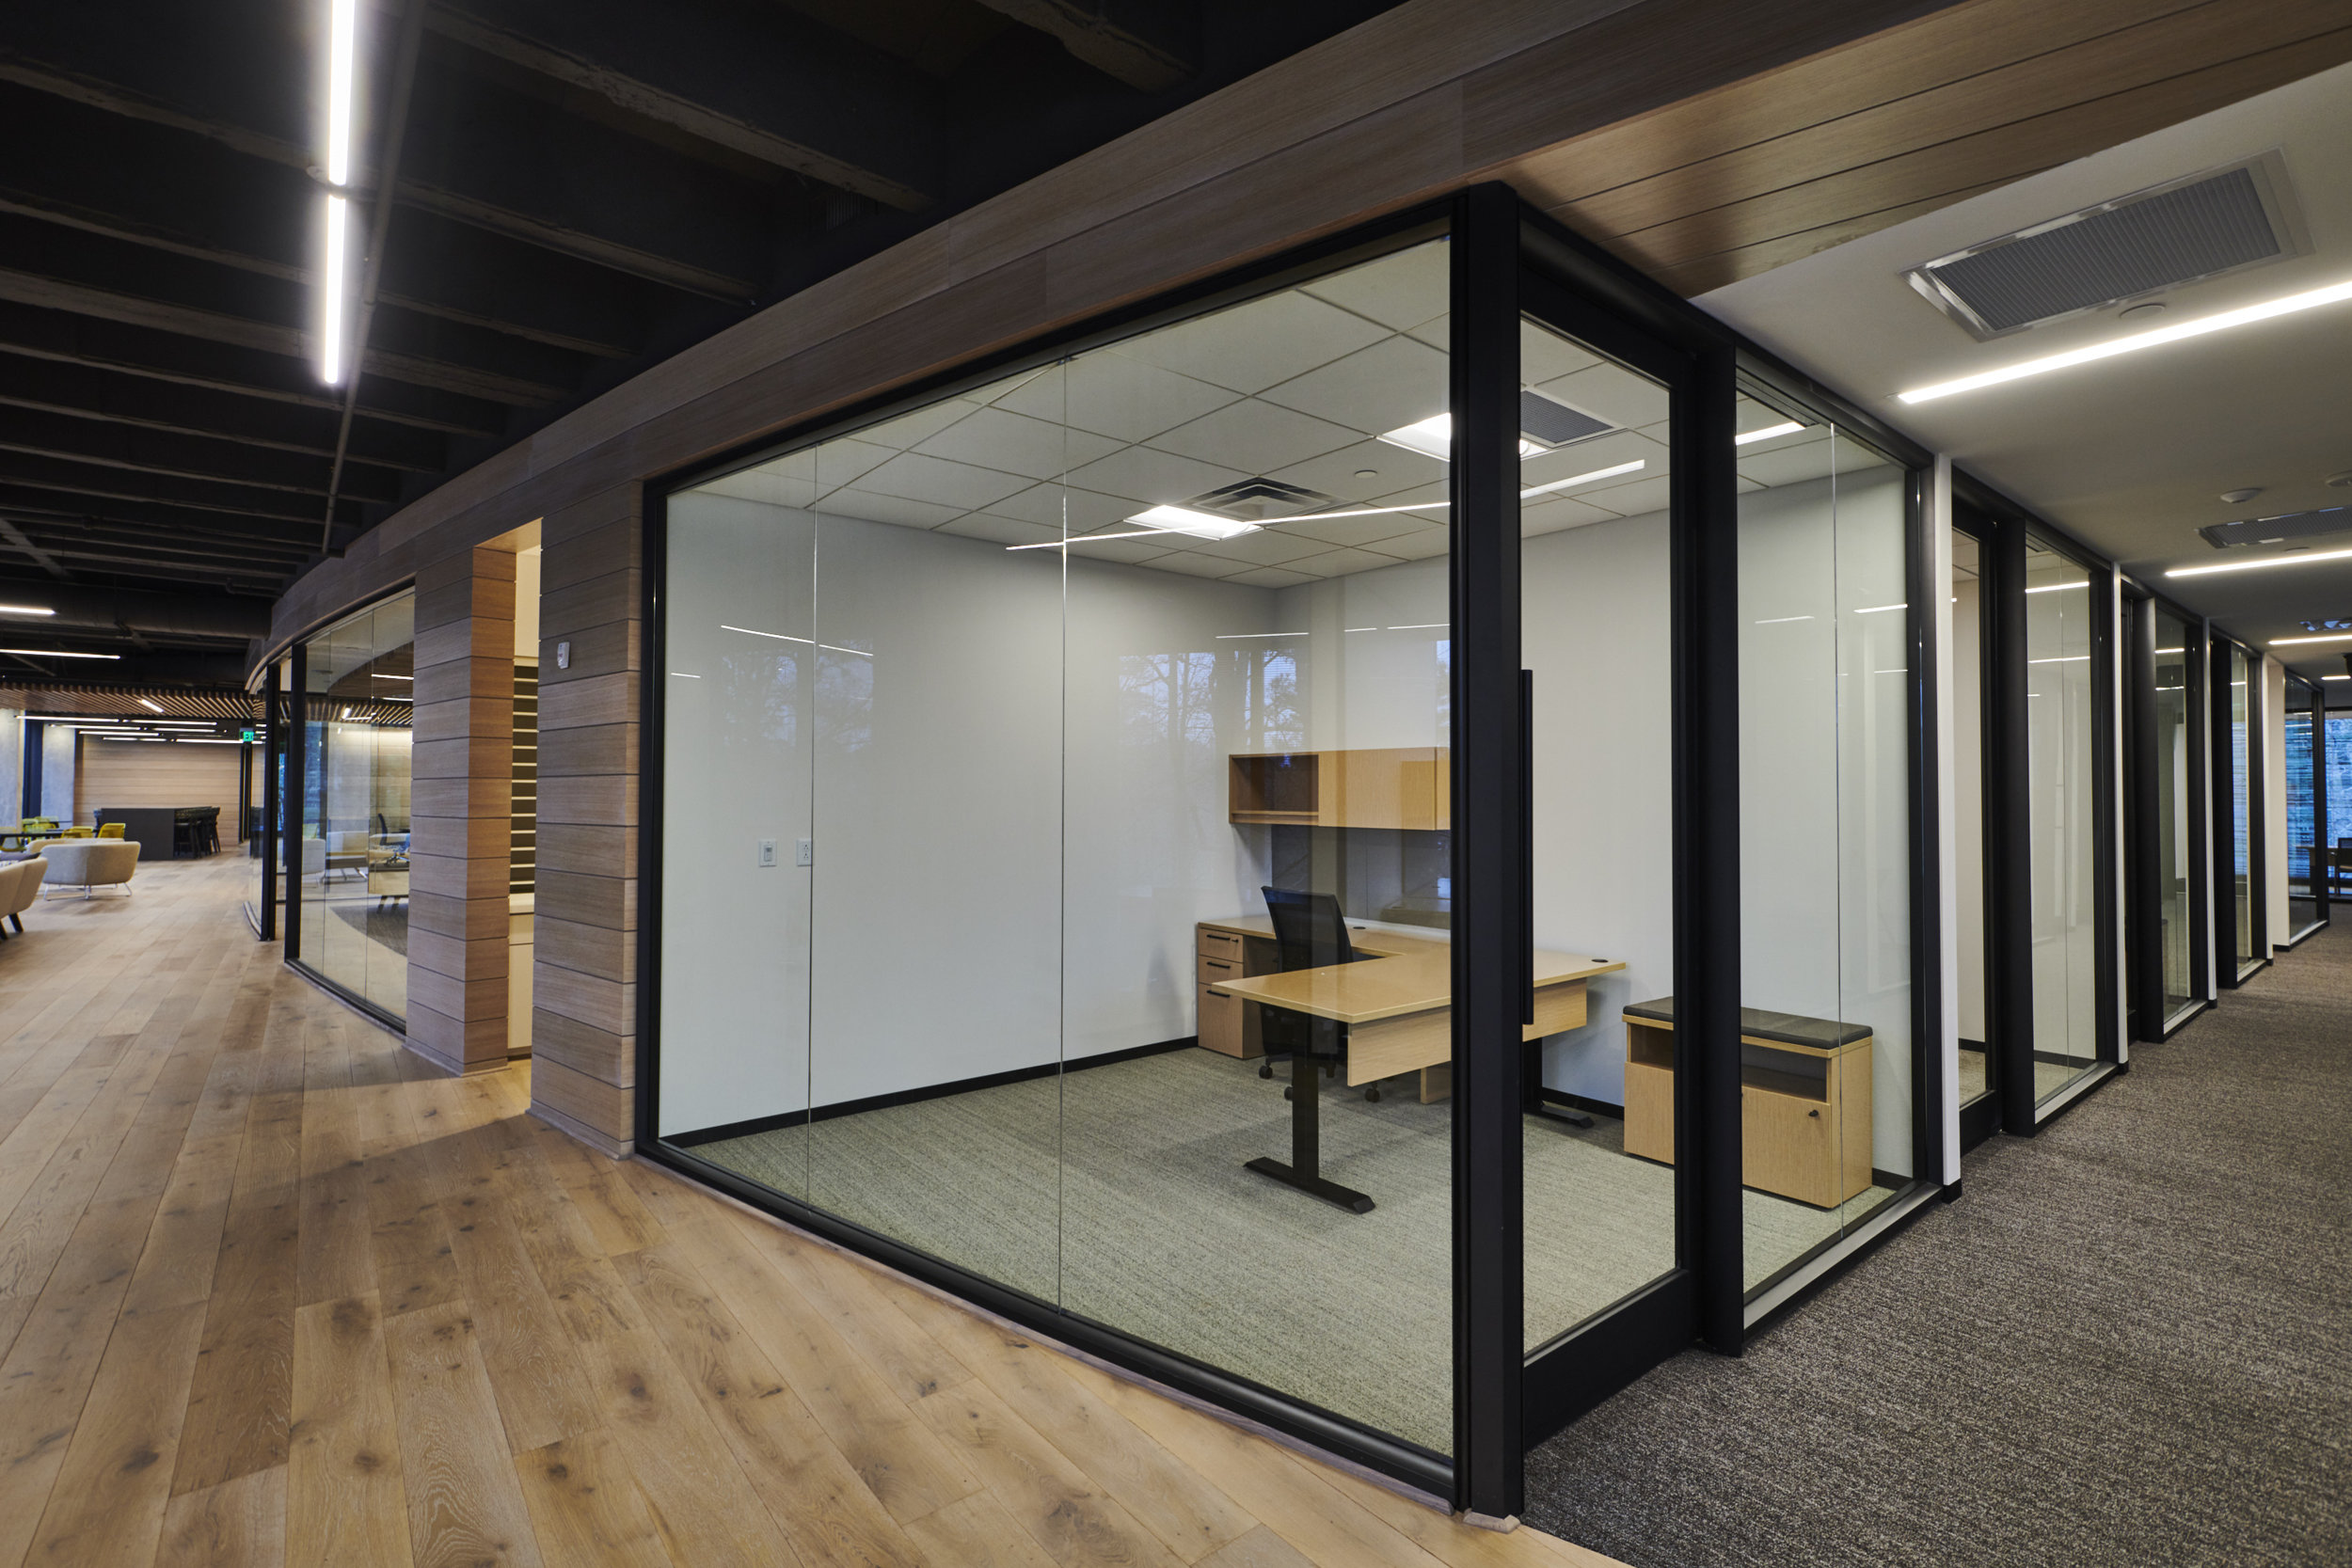 The interior finishes combine the company's formal side blended with the dynamic use of wood reflecting their specialization in timber investment. This synthesis is emphasized throughout the space with the use of wide plank oak walls and floors contrasting with the dark frames of the glass partitions.